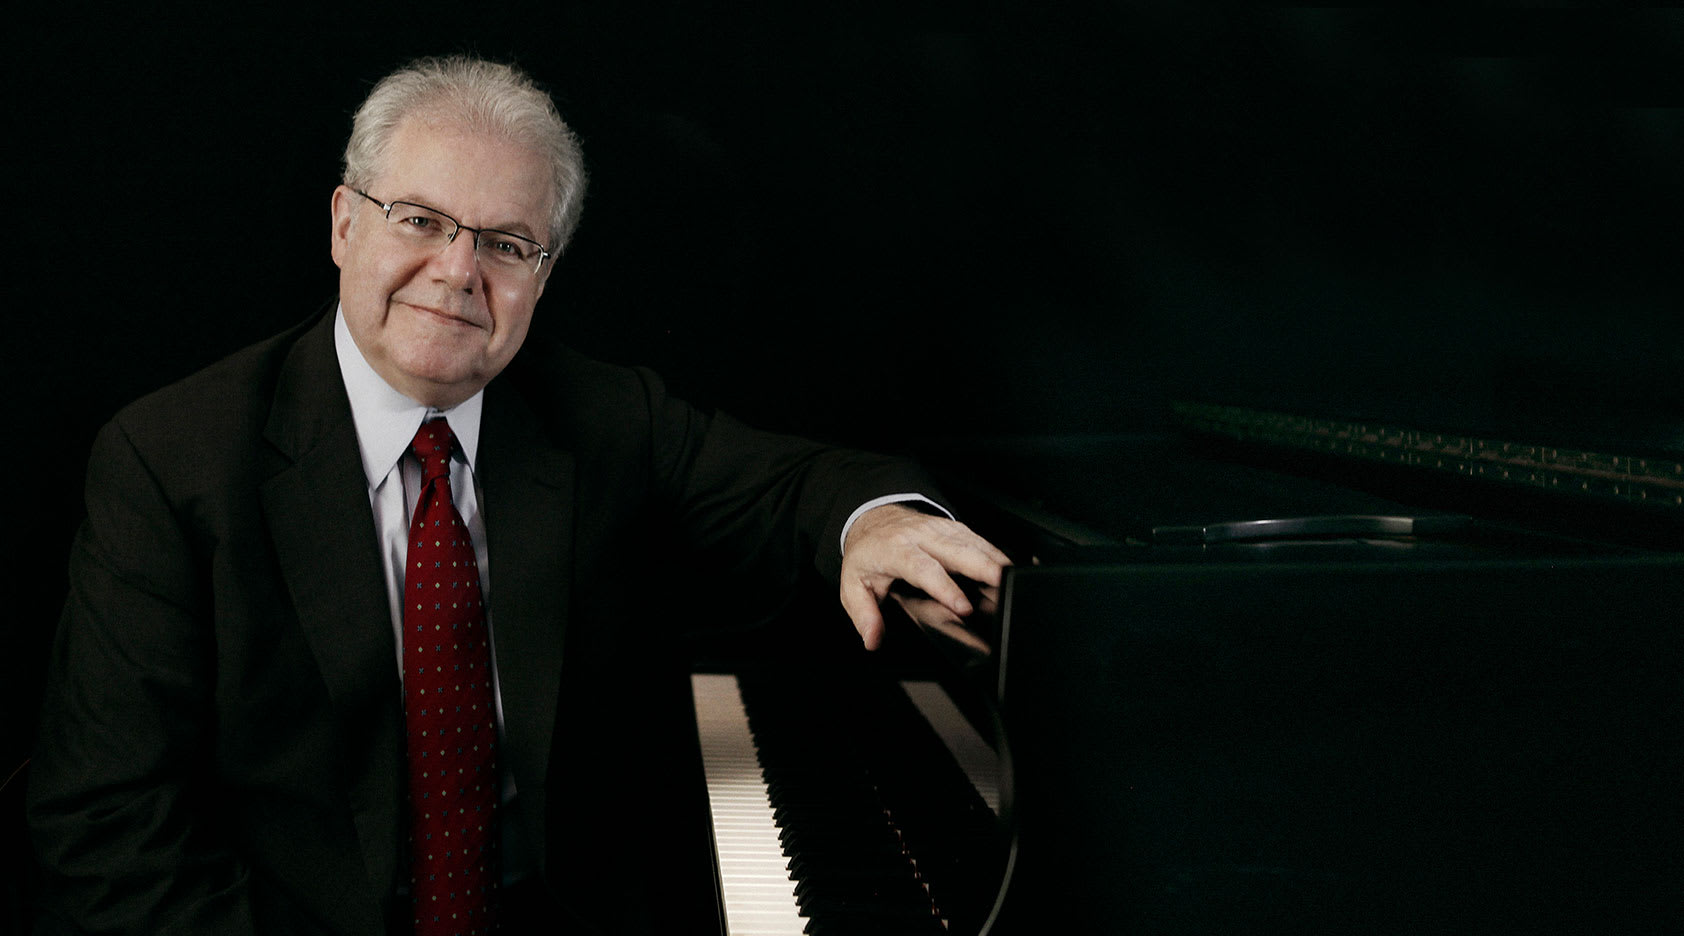 CANCELLED: Emanuel Ax at 92Y